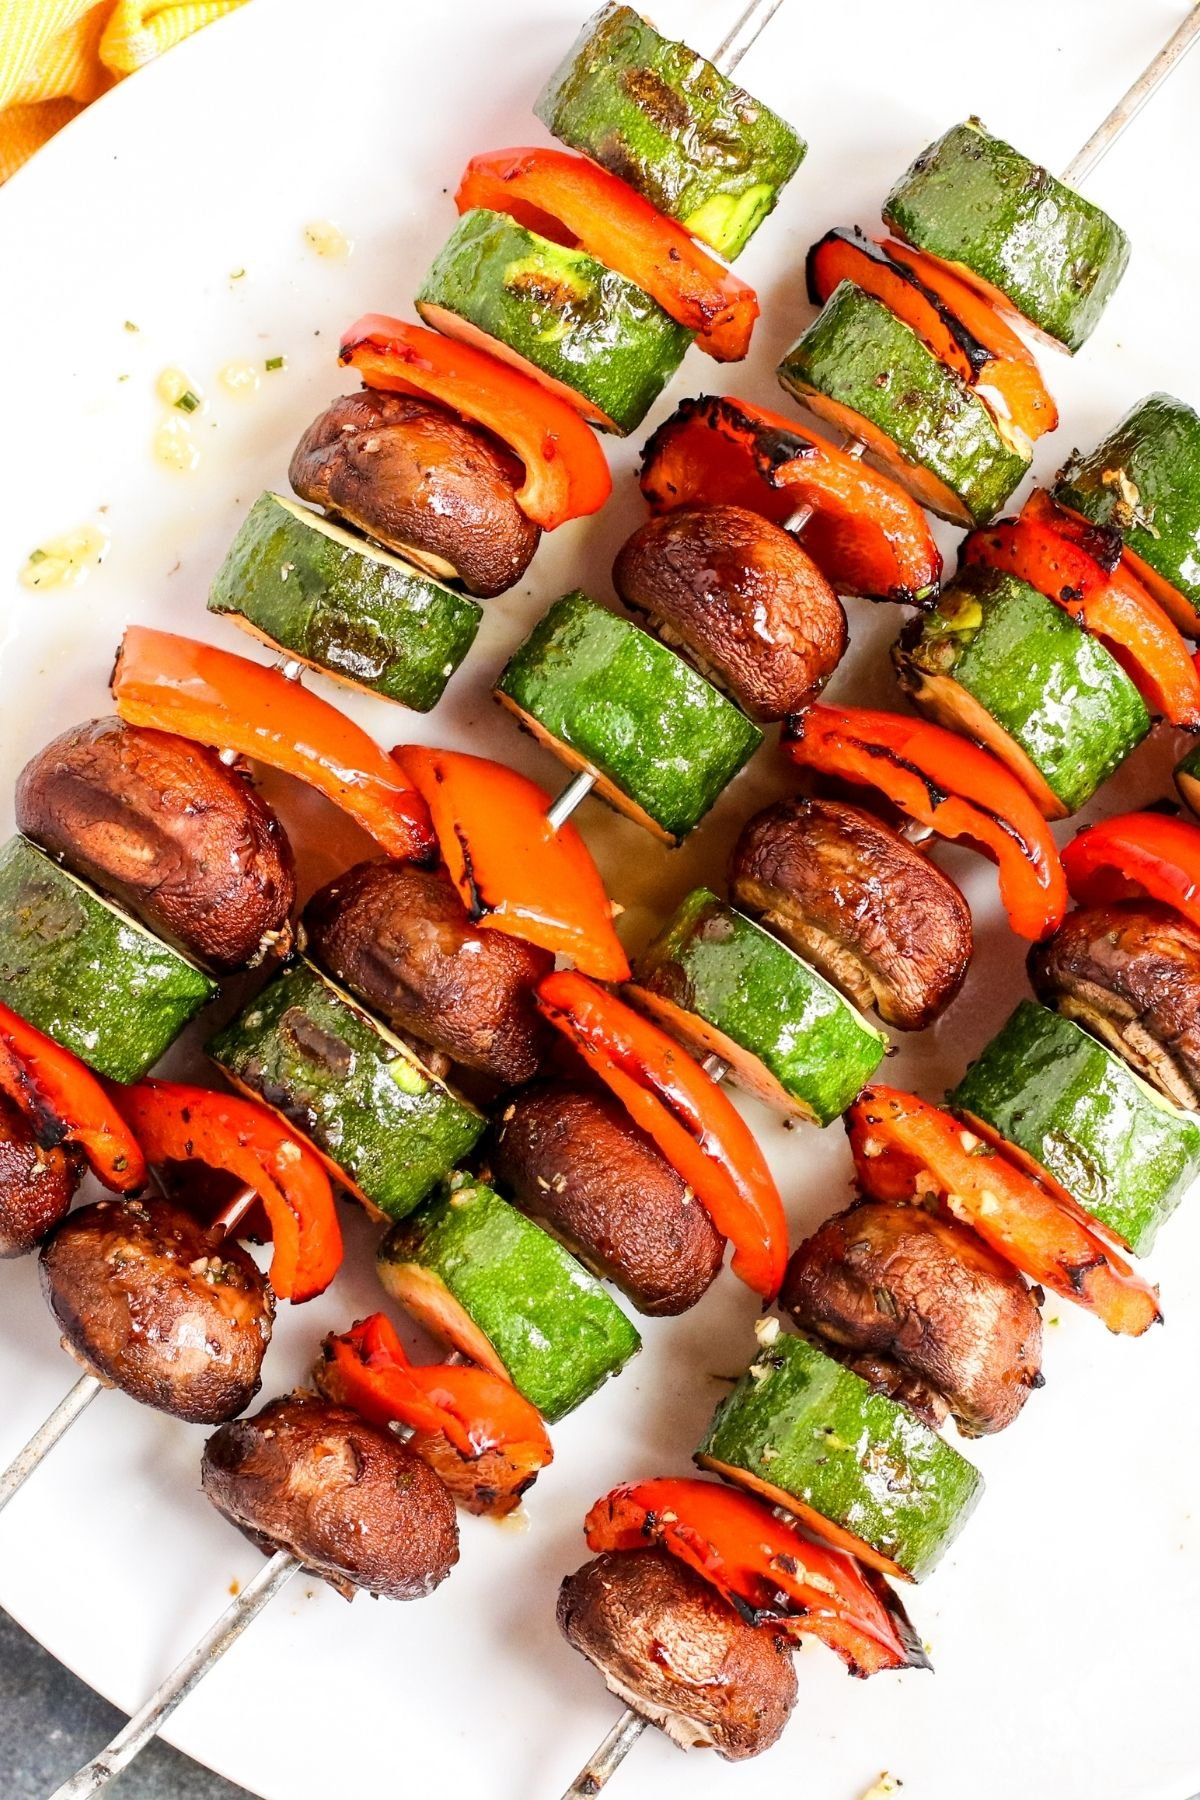 Platter of grilled zucchini, red bell peppers, and mushrooms on metal skewers